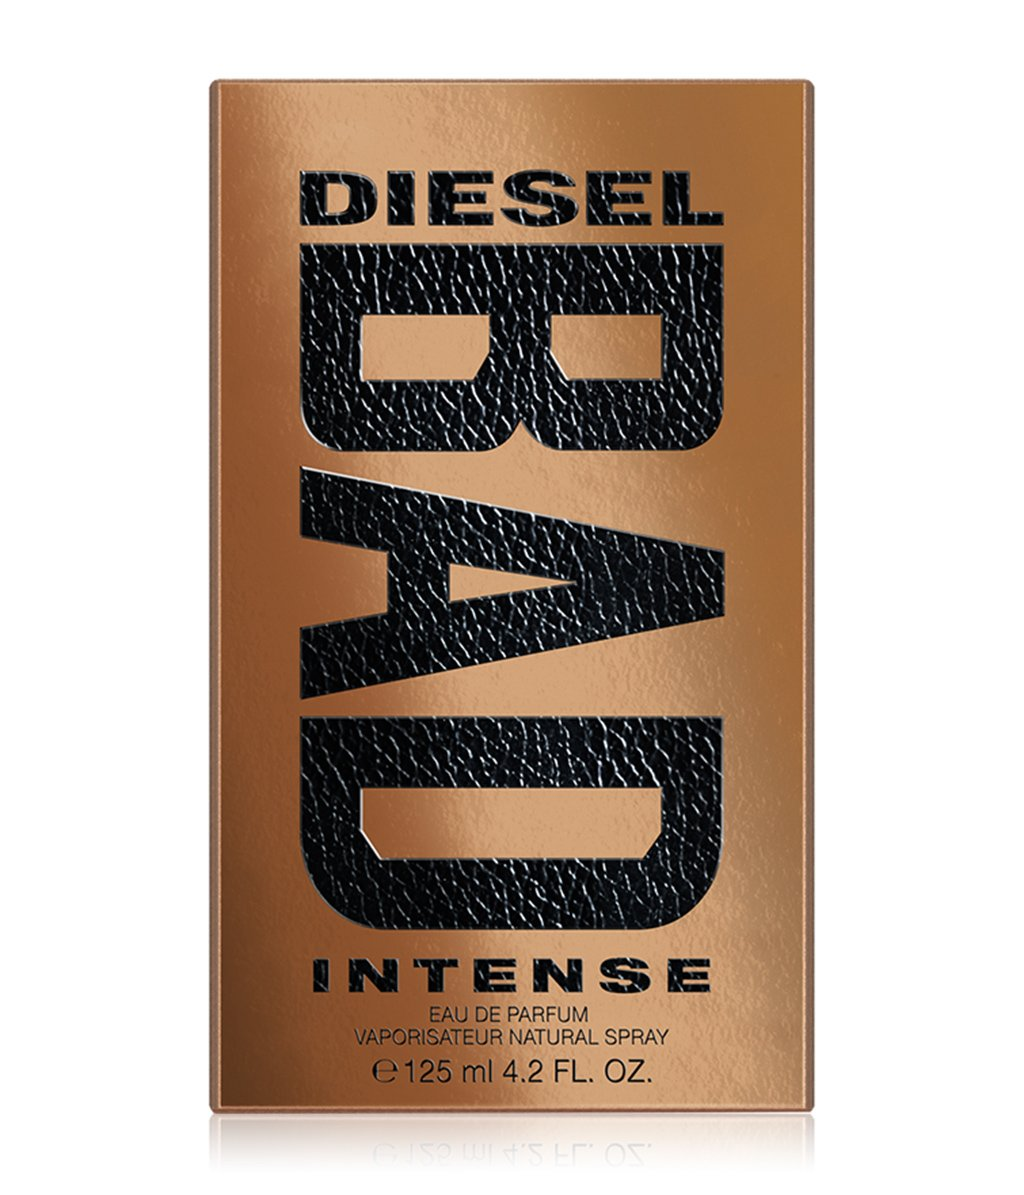 diesel bad intense eau de parfum bestellen flaconi. Black Bedroom Furniture Sets. Home Design Ideas